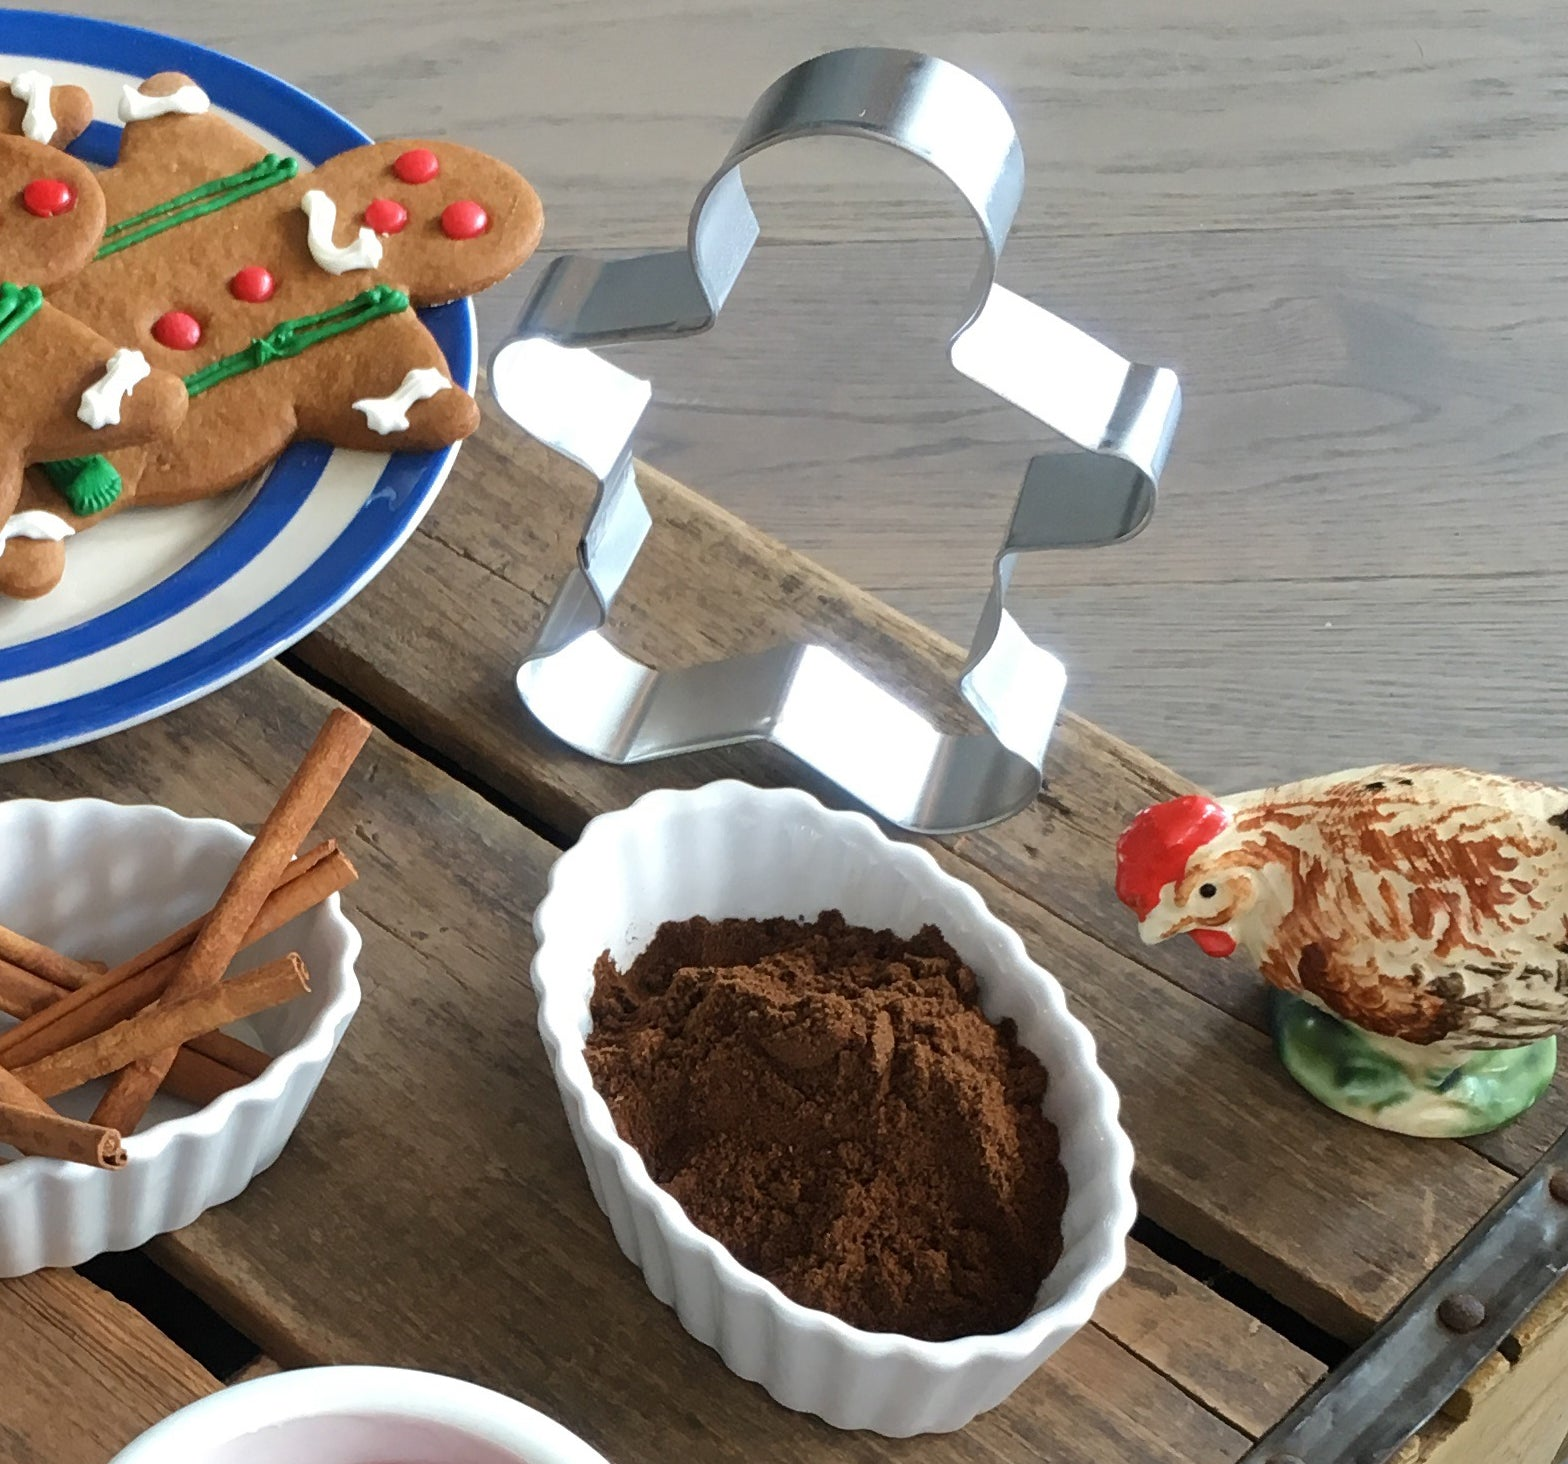 Gingerbread cookie cutter from Ginger's Breadboys